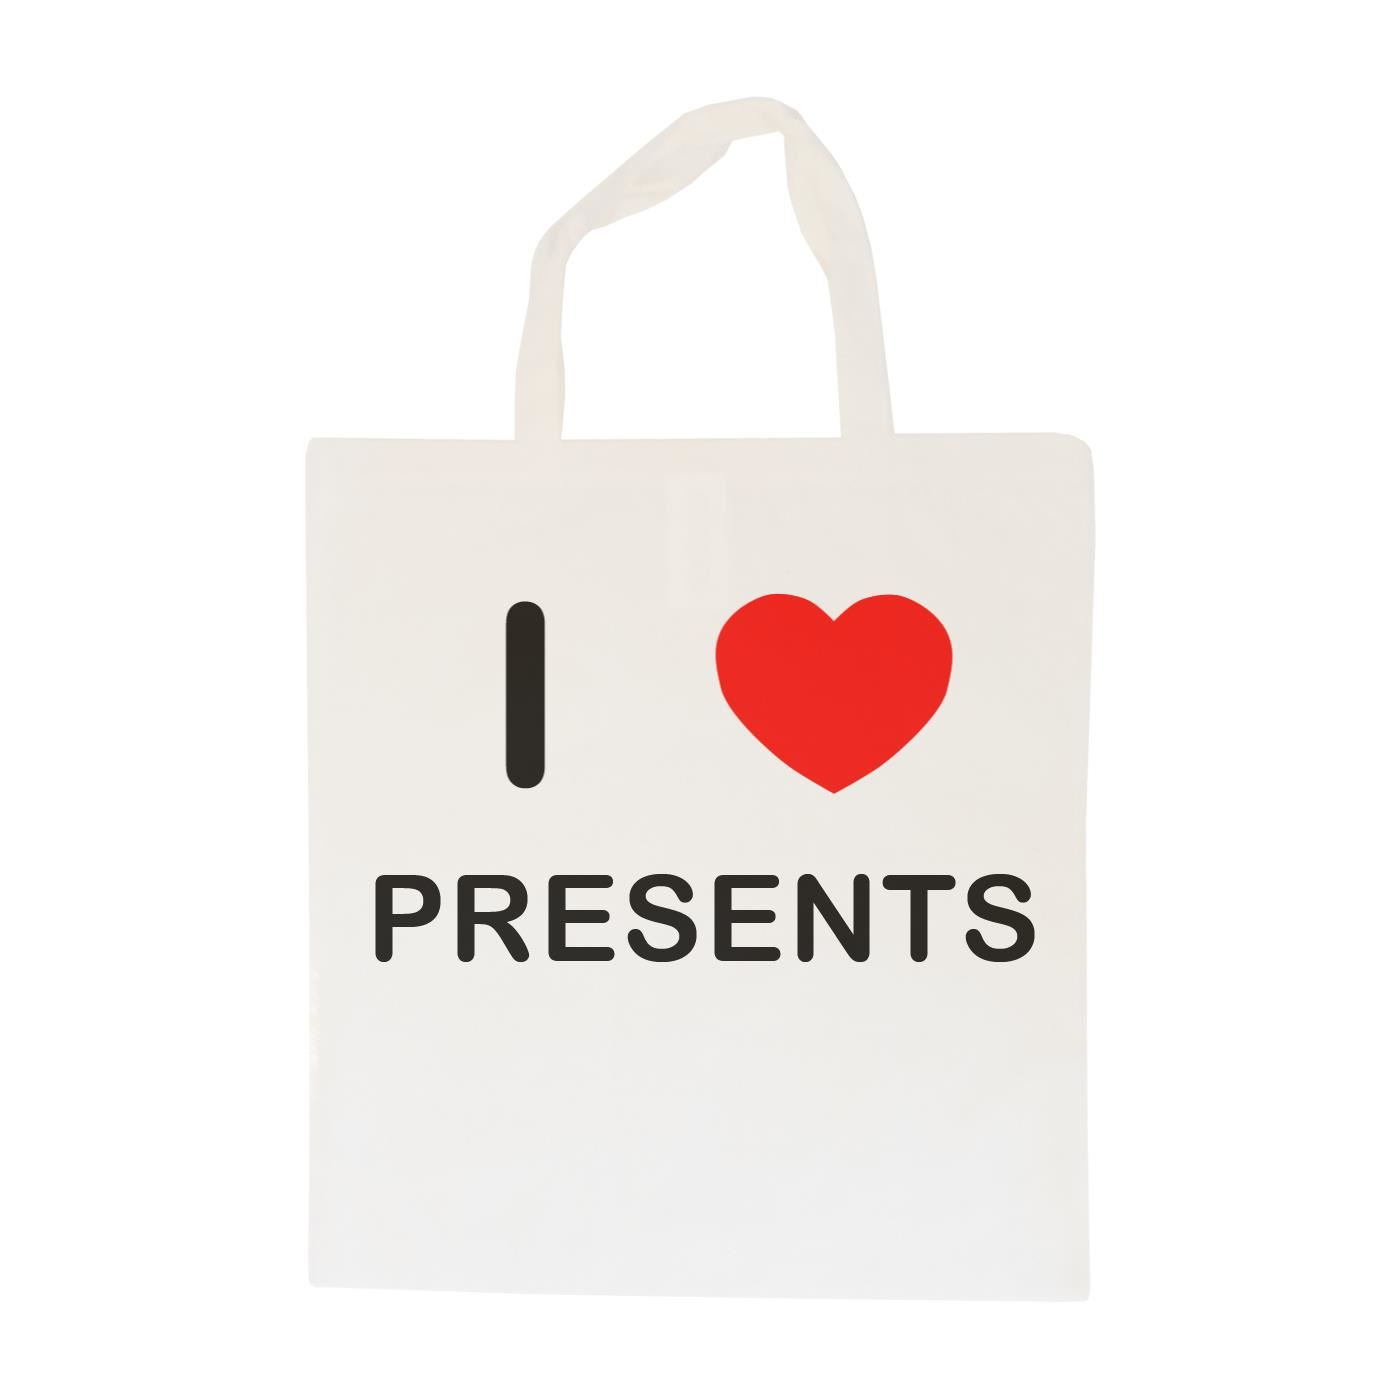 I Love Presents - Cotton Bag | Size choice Tote, Shopper or Sling